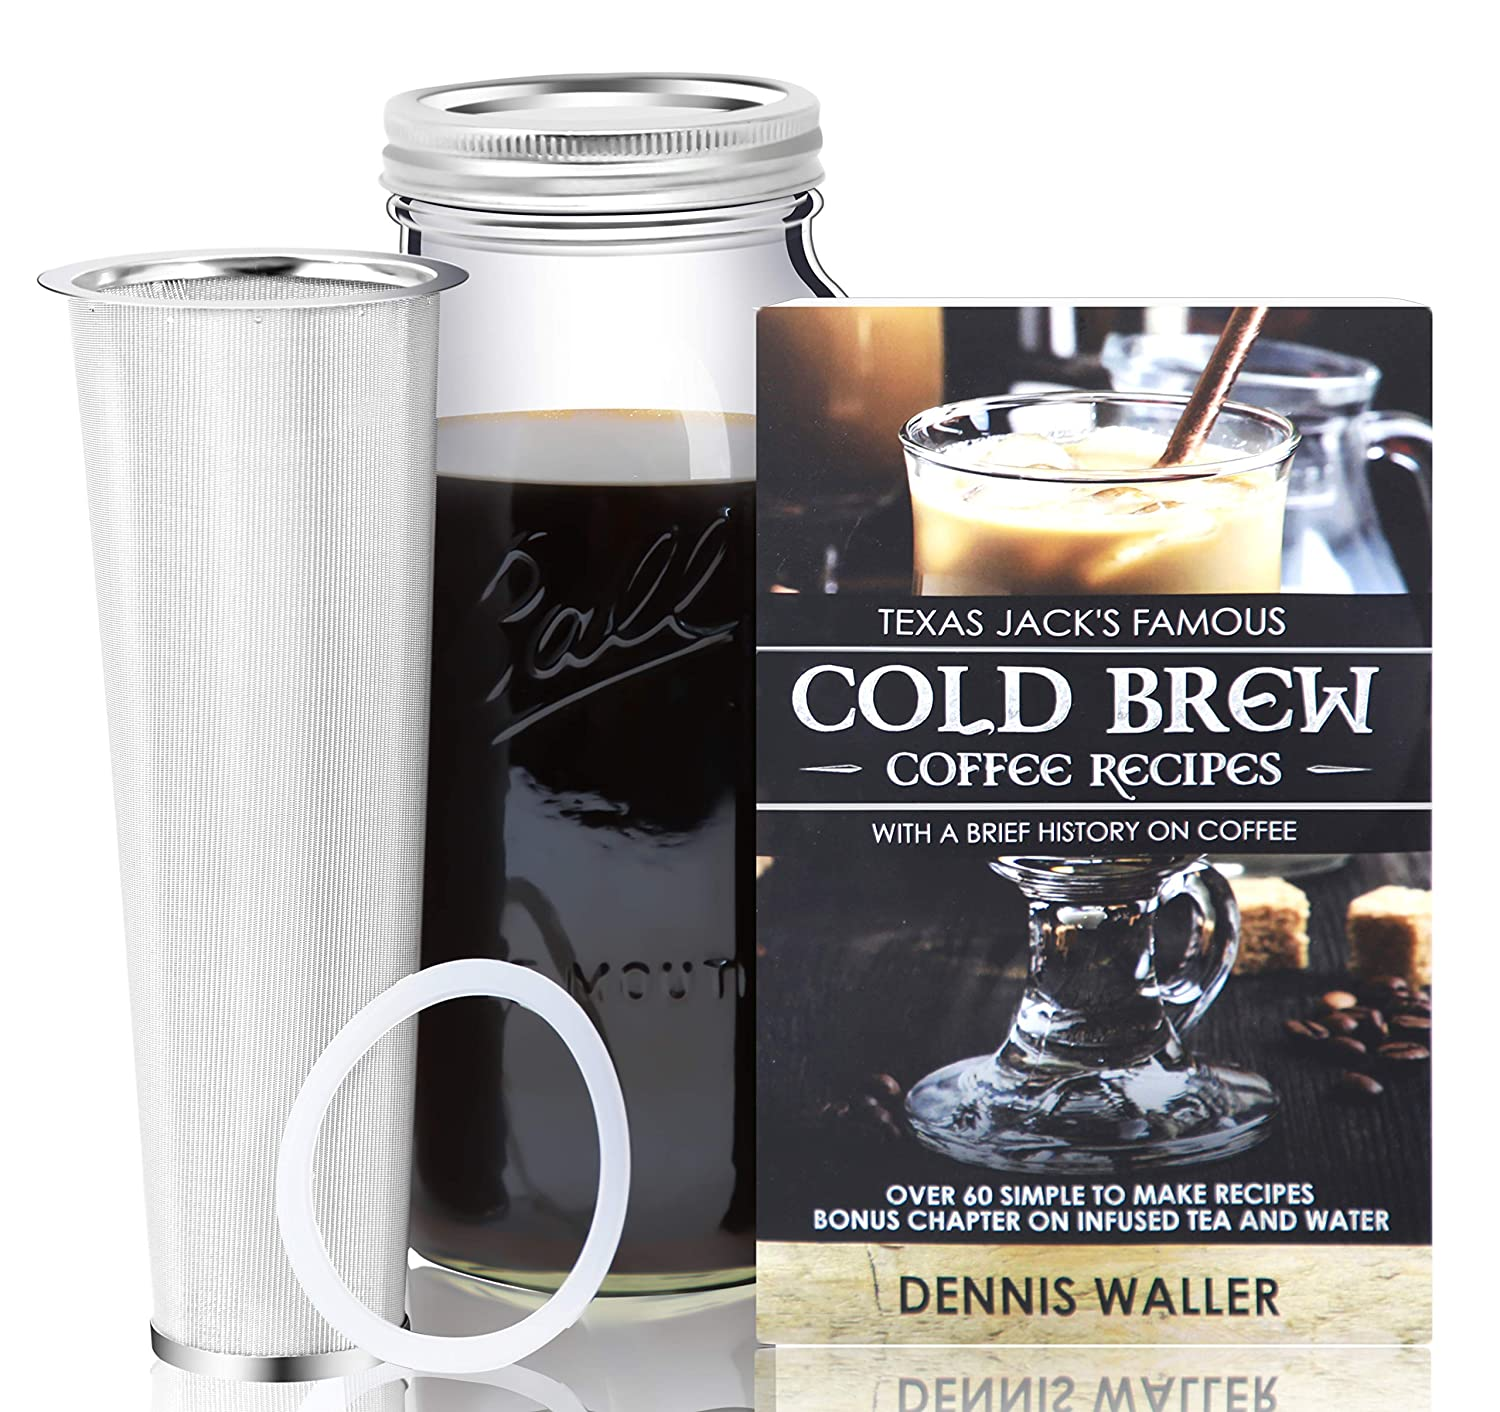 Cold Brew Coffee Maker Kit Large 2 Quart Half Gallon 130pg 60 Recipes and Instruction Book Quality Ball Wide Mouth Mason Jar Stainless Filter Basket. Makes Coffee, Infused Water Tea